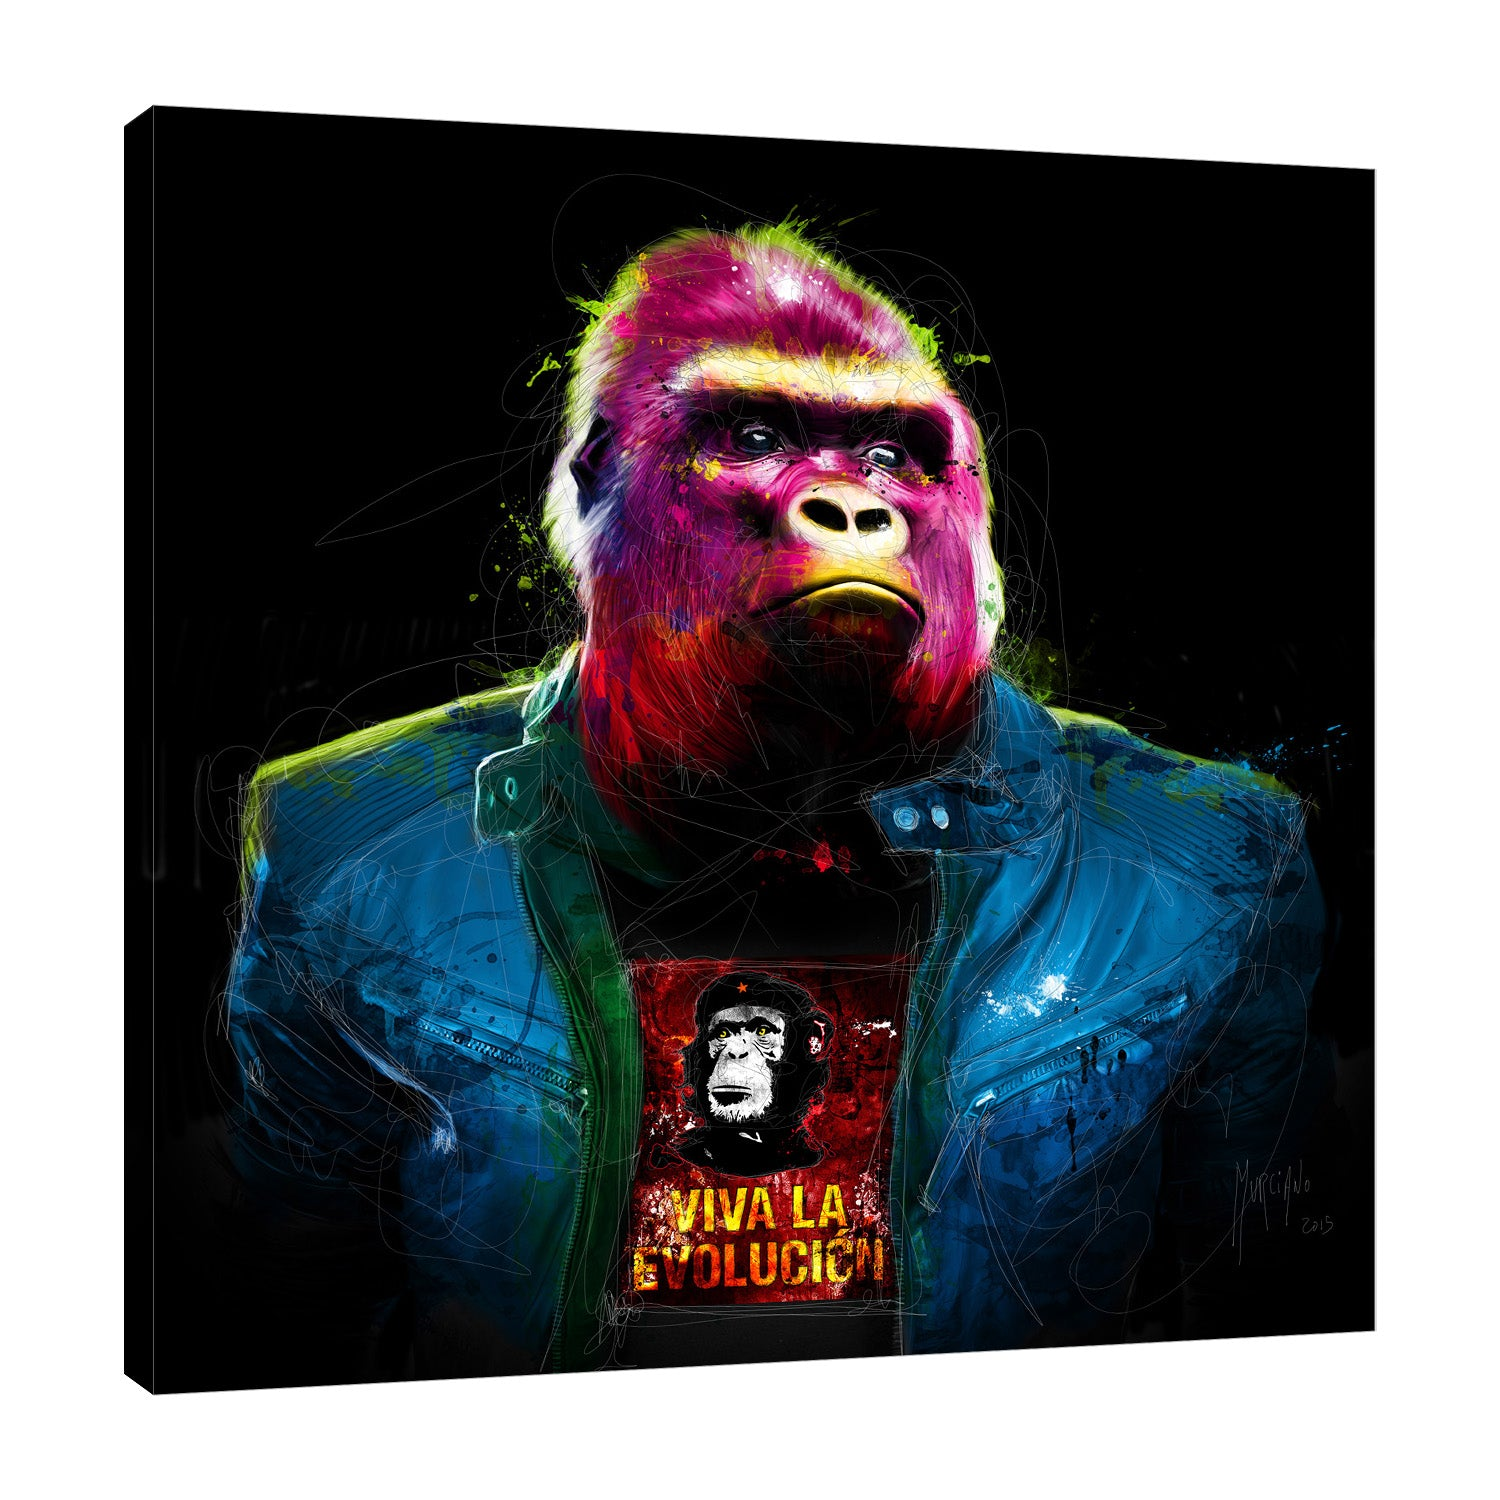 Patrice-Murciano,Modern & Contemporary,Animals,gorilla,animals,jackets,pink,Red,Gray,Purple,Blue,Charcoal Gray,Black